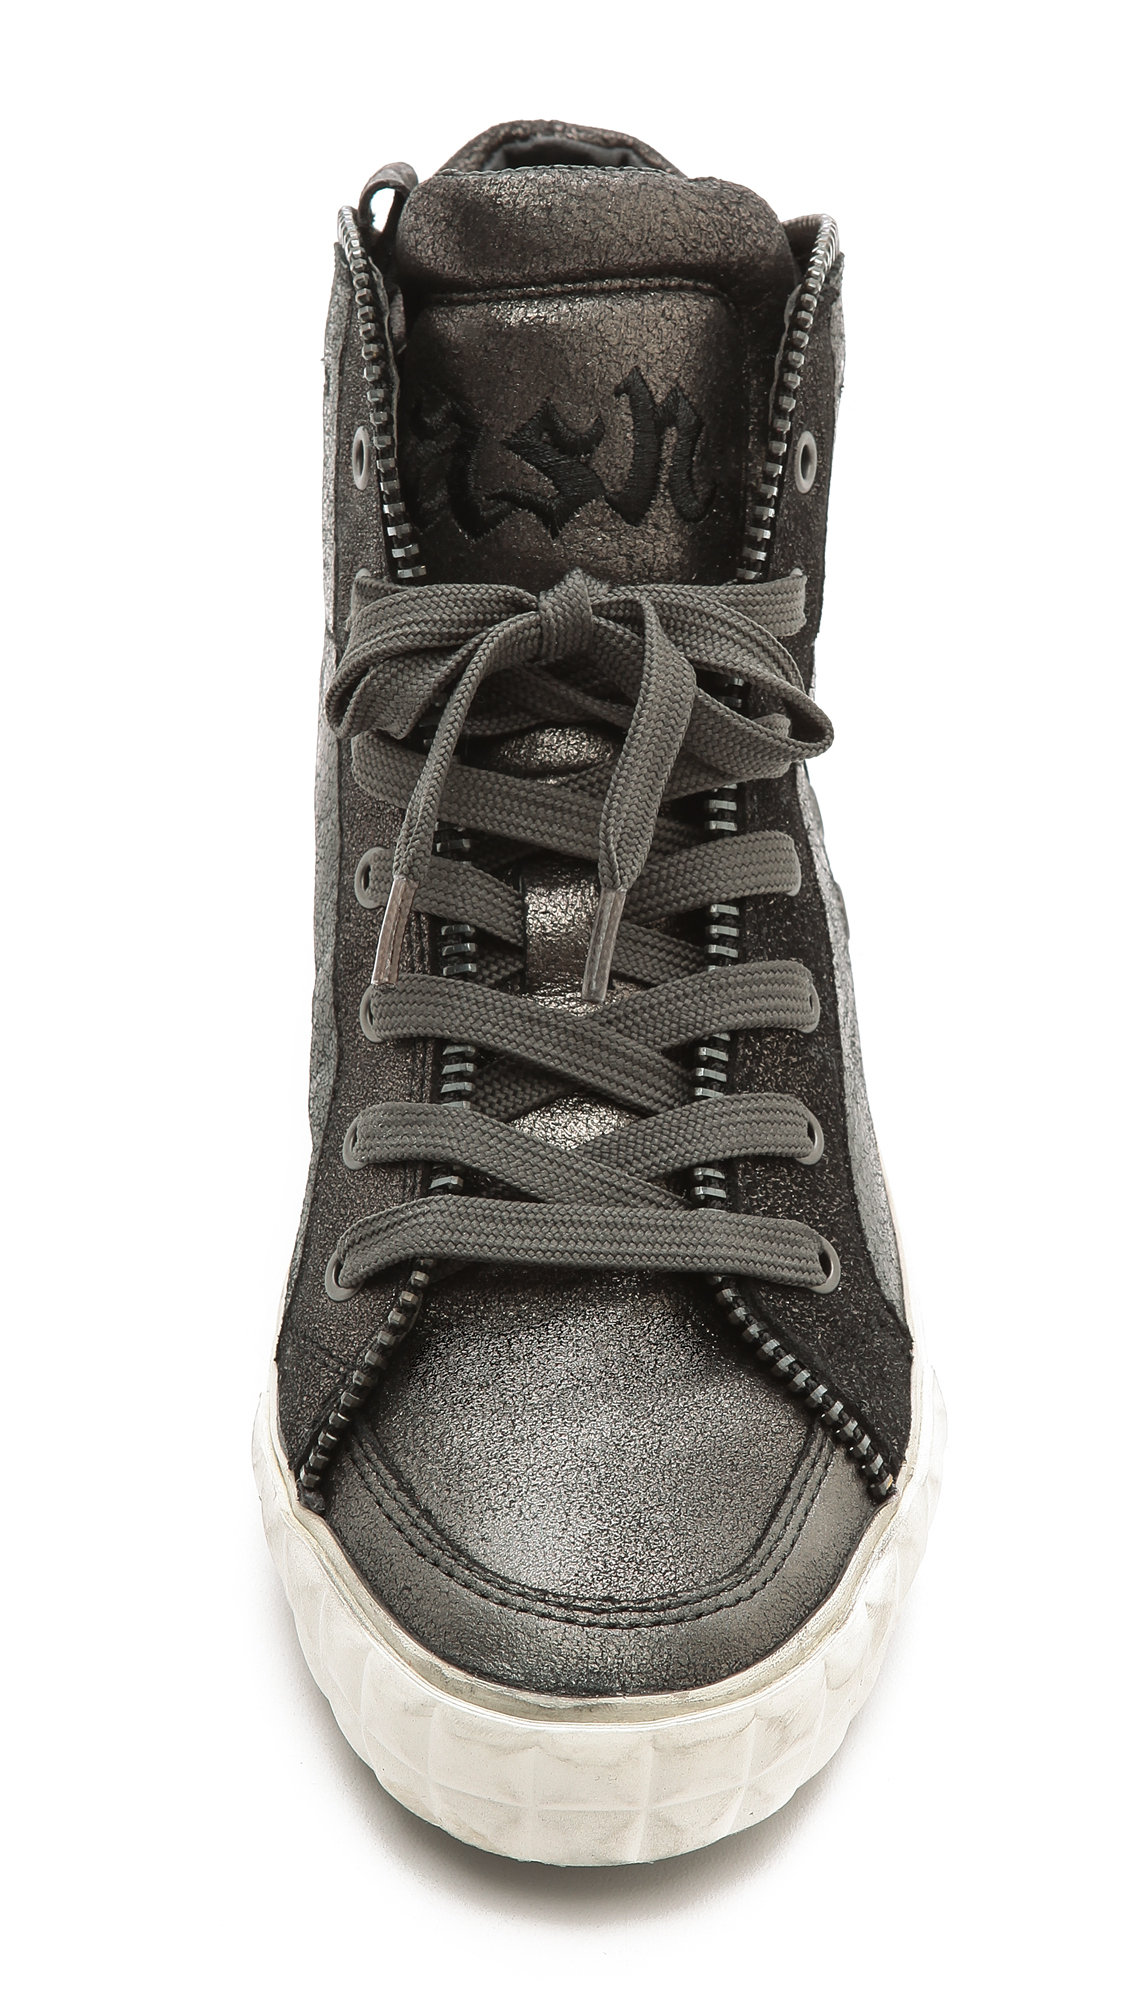 cf613f400bd88 Lyst - Ash Shake High Top Zipper Sneakers - Black Graphite Graphite ...